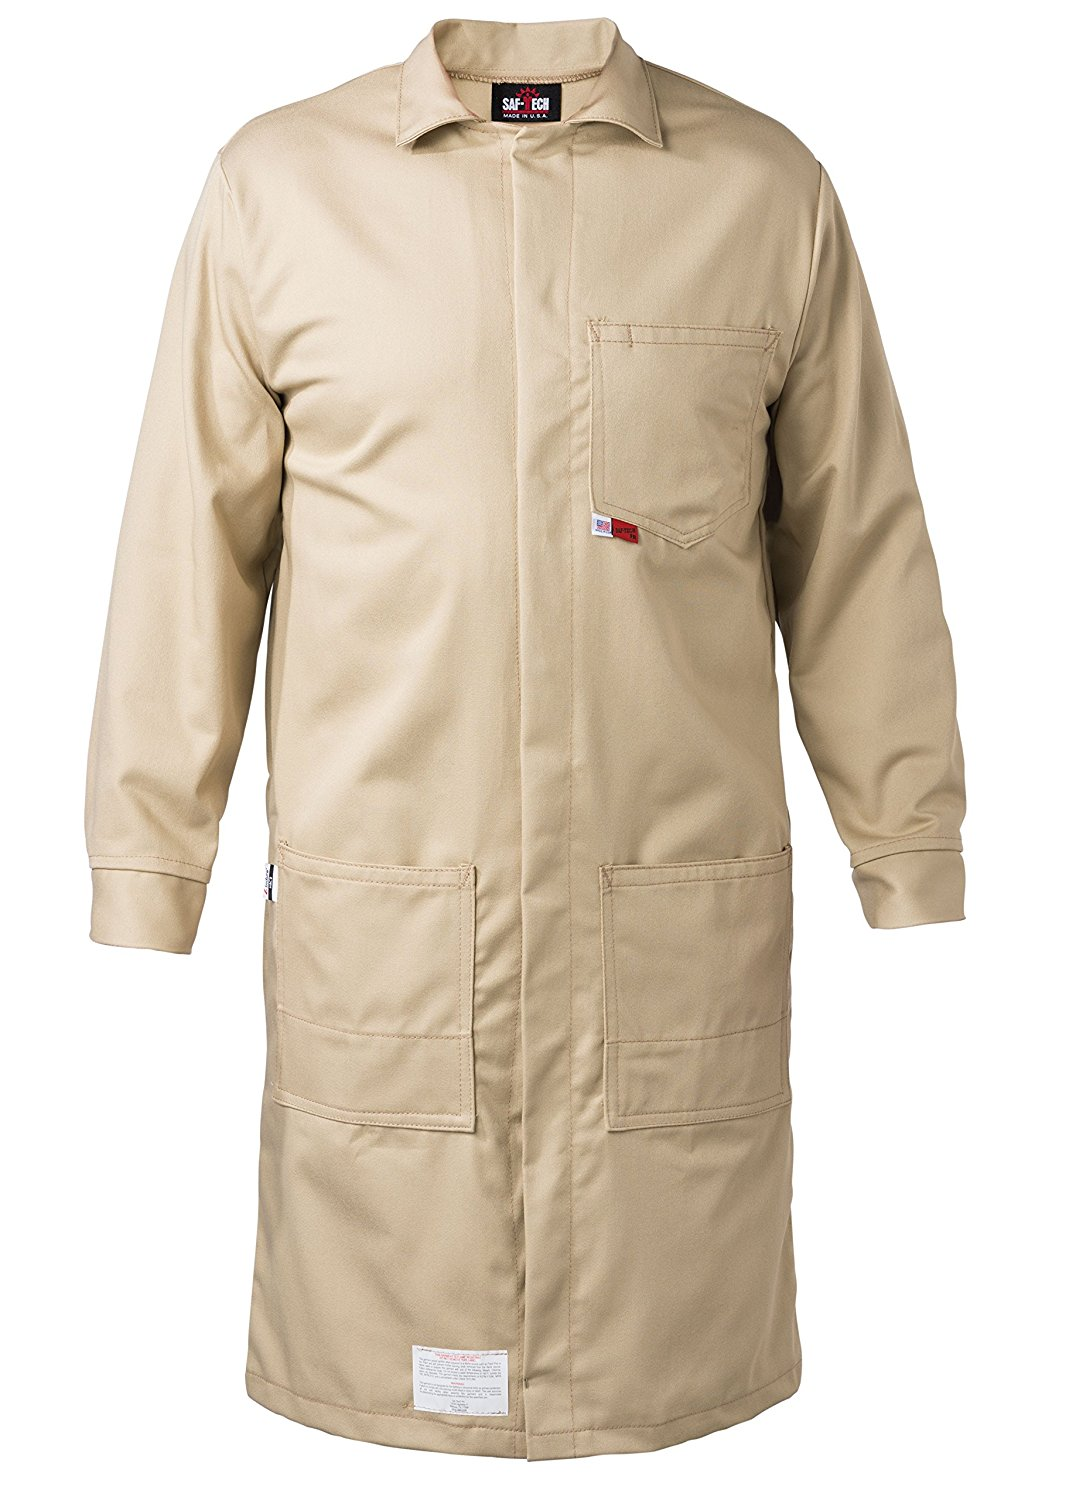 KHAKI - SMALL - FR LAB COAT - 6oz. NOMEX III3 Flame Resistant Fabric - Lab or Classroom Ready - HRC 1 - APTV= 5.7 cal/m2 - MADE IN THE U.S.A.